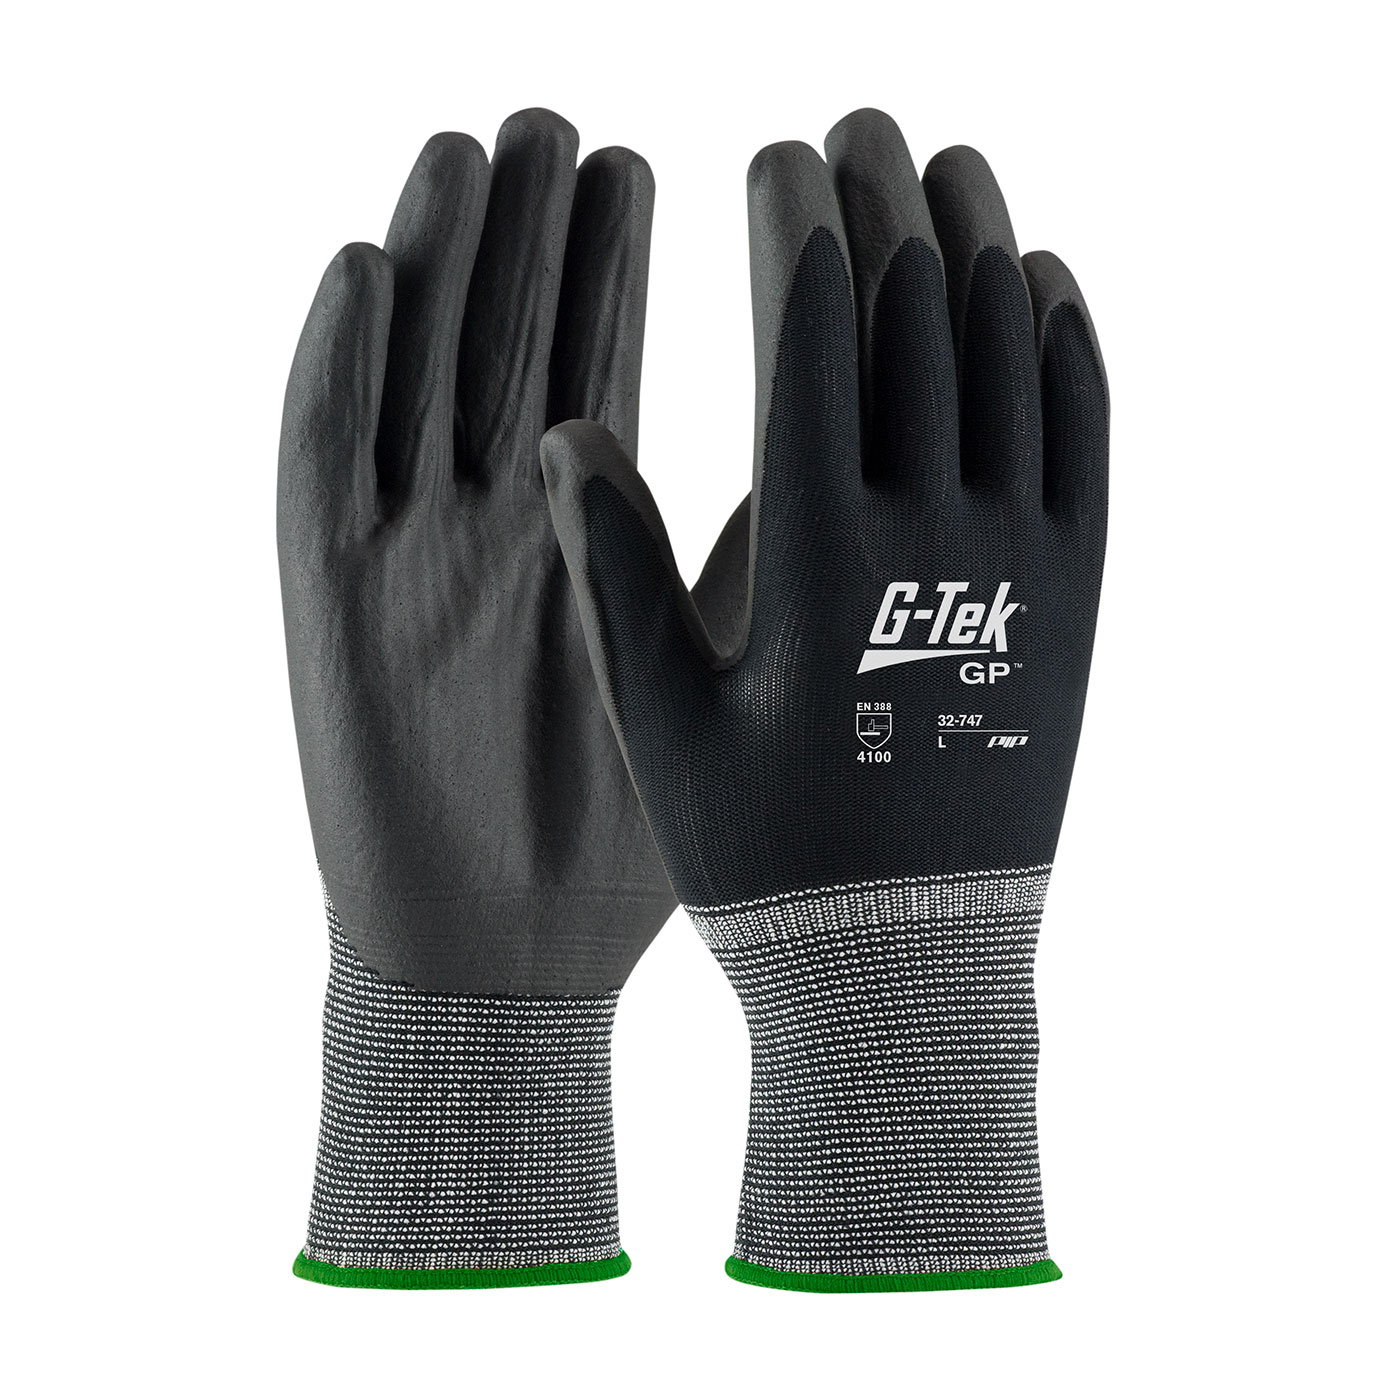 PIP G-Tek® GP™ Seamless Knit Nylon Glove with Air-Infused PVC Coating on Palm & Fingers #32-747